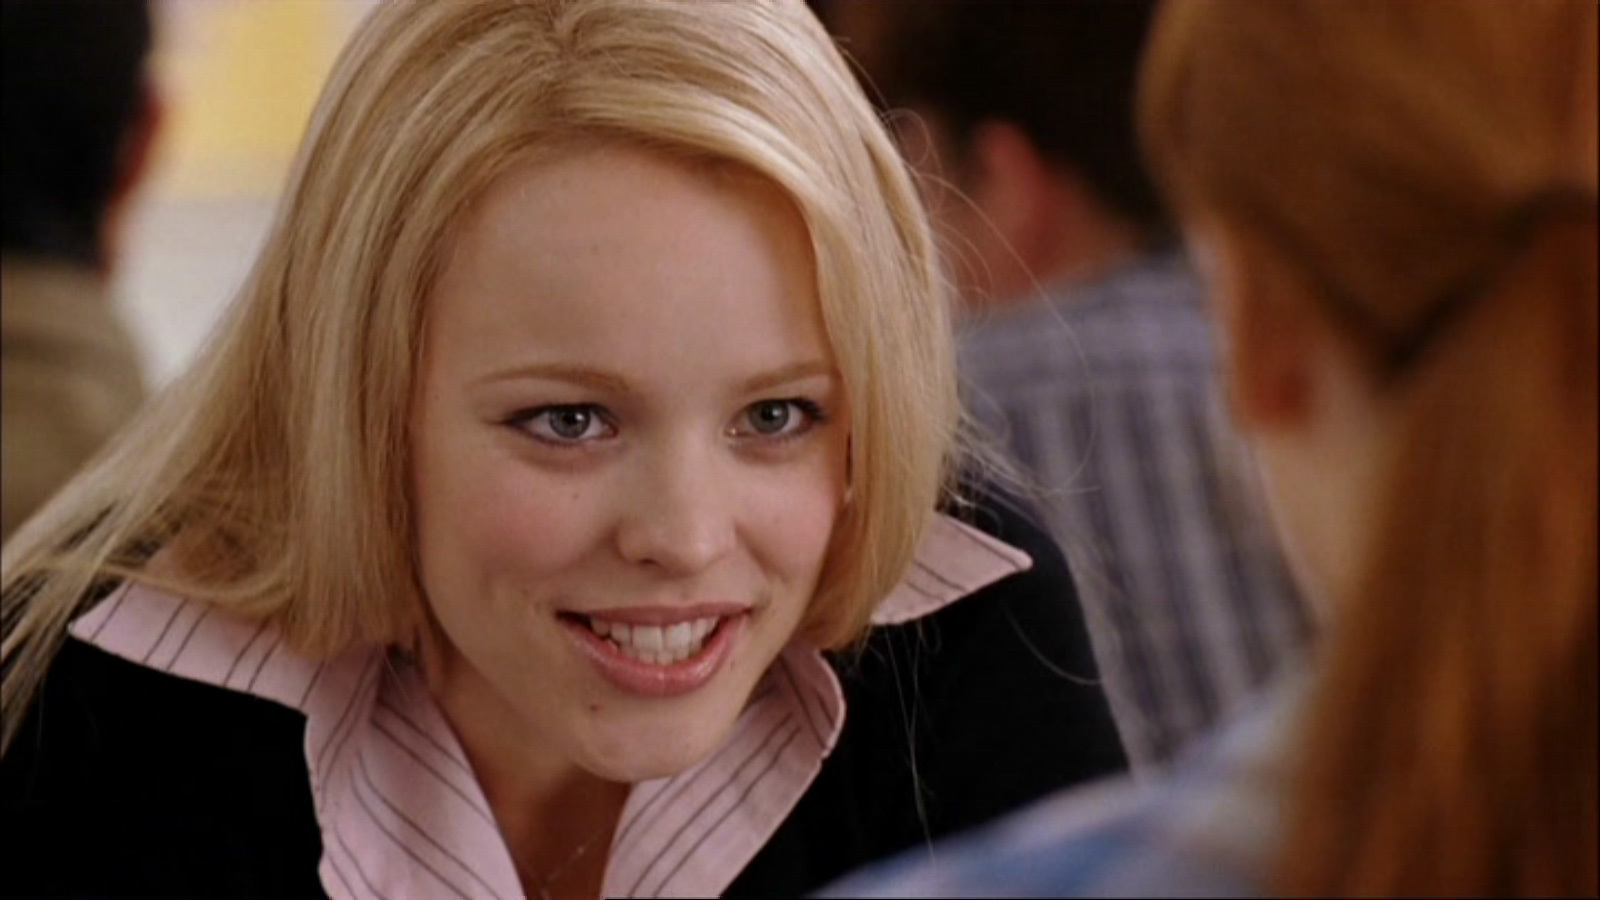 Regina George (Mean Girls)